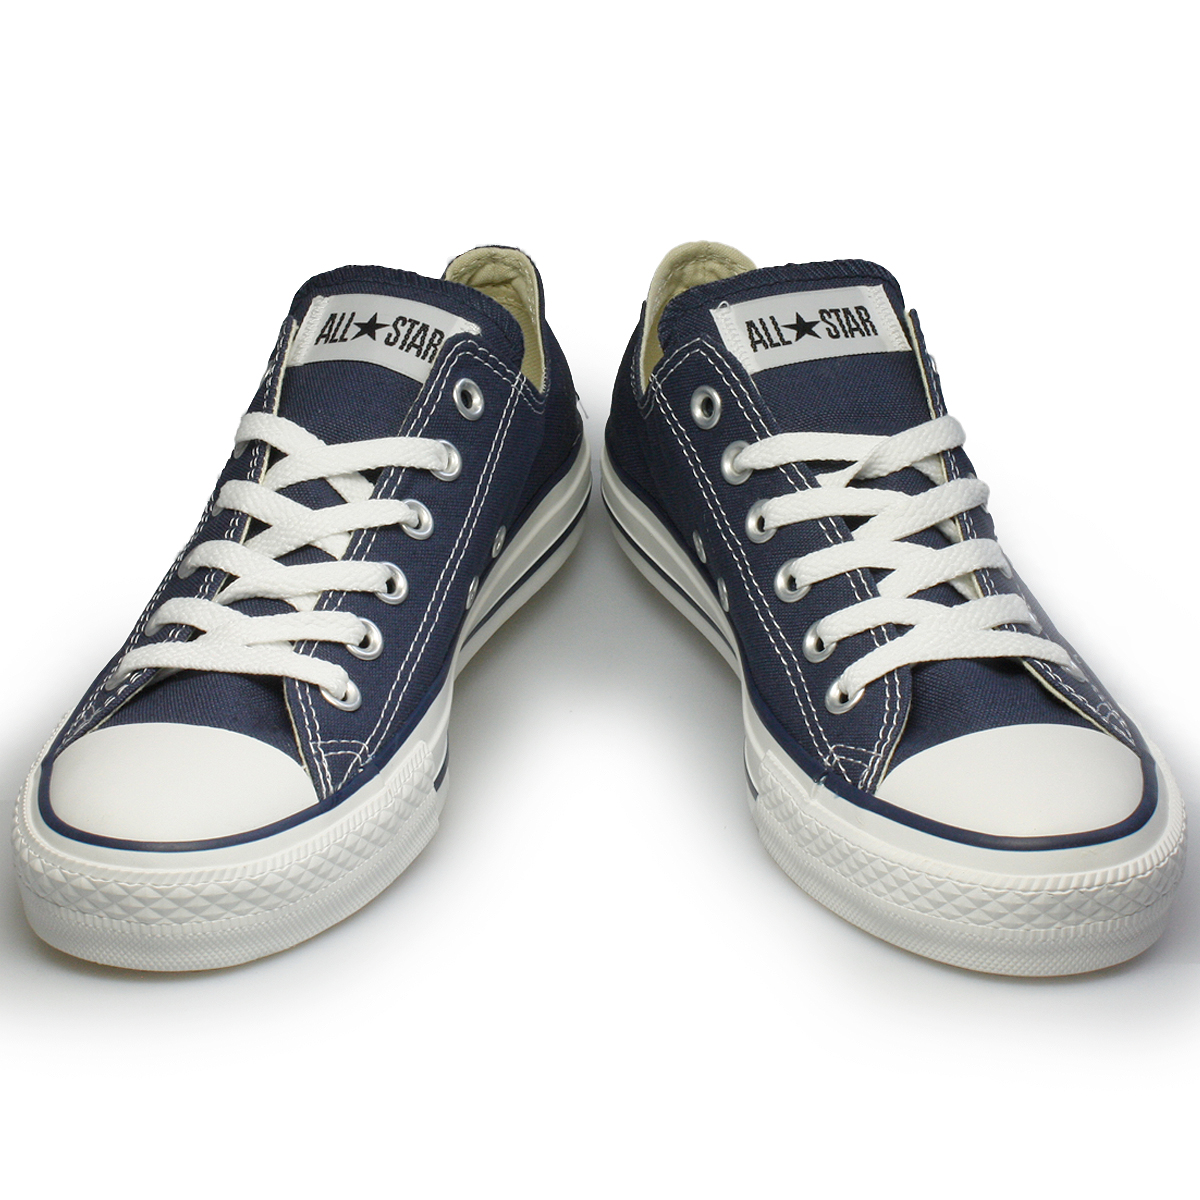 converse all navy blue canvas trainers sneakers shoes